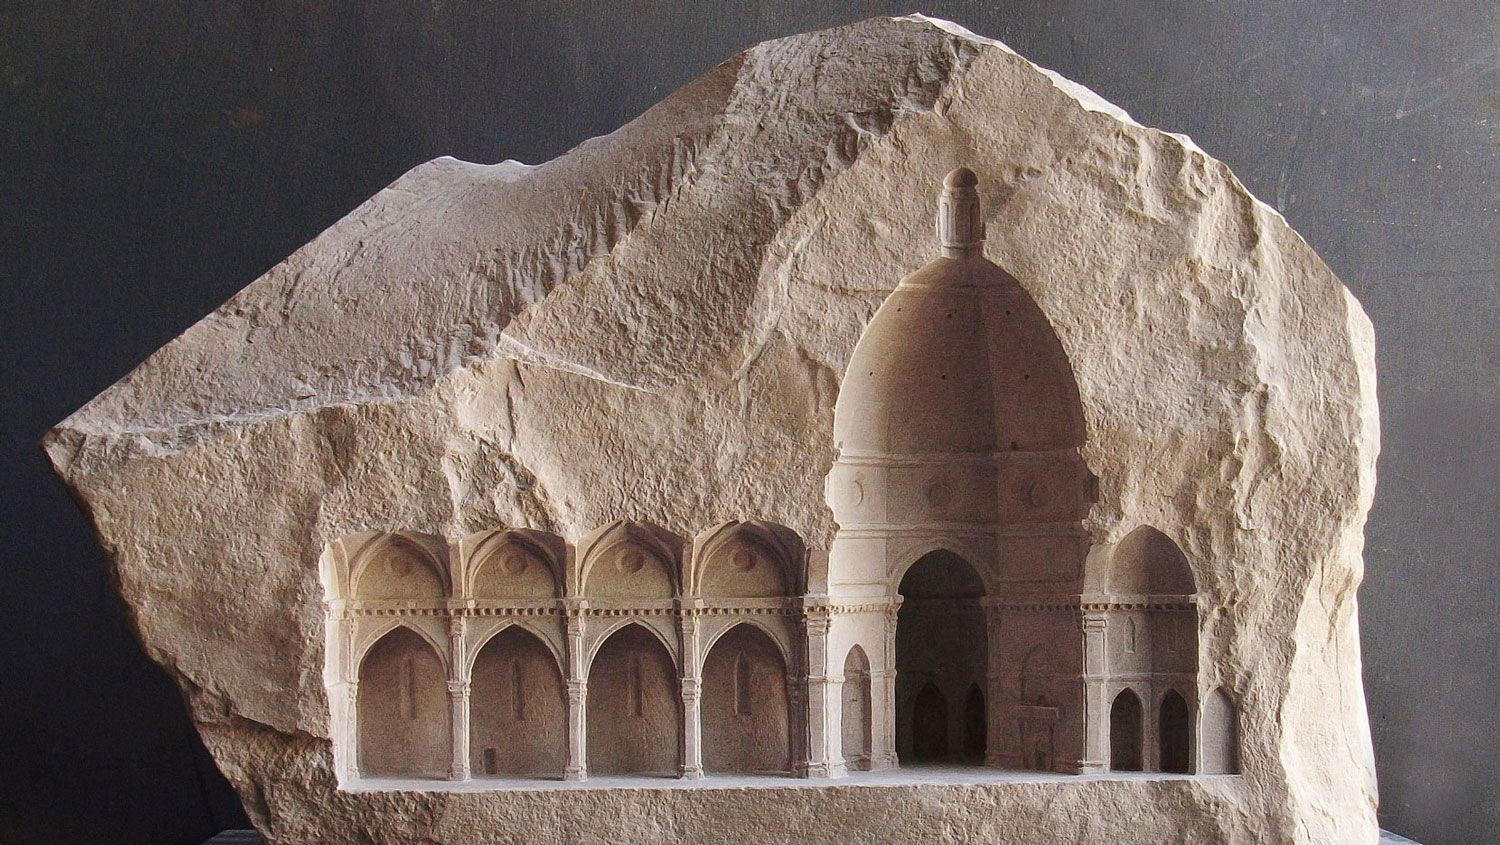 Architectural Marble Carvings by Matthew Simmonds | Yellowtrace |  Architectural sculpture, Stone sculpture, Decorative sculpture